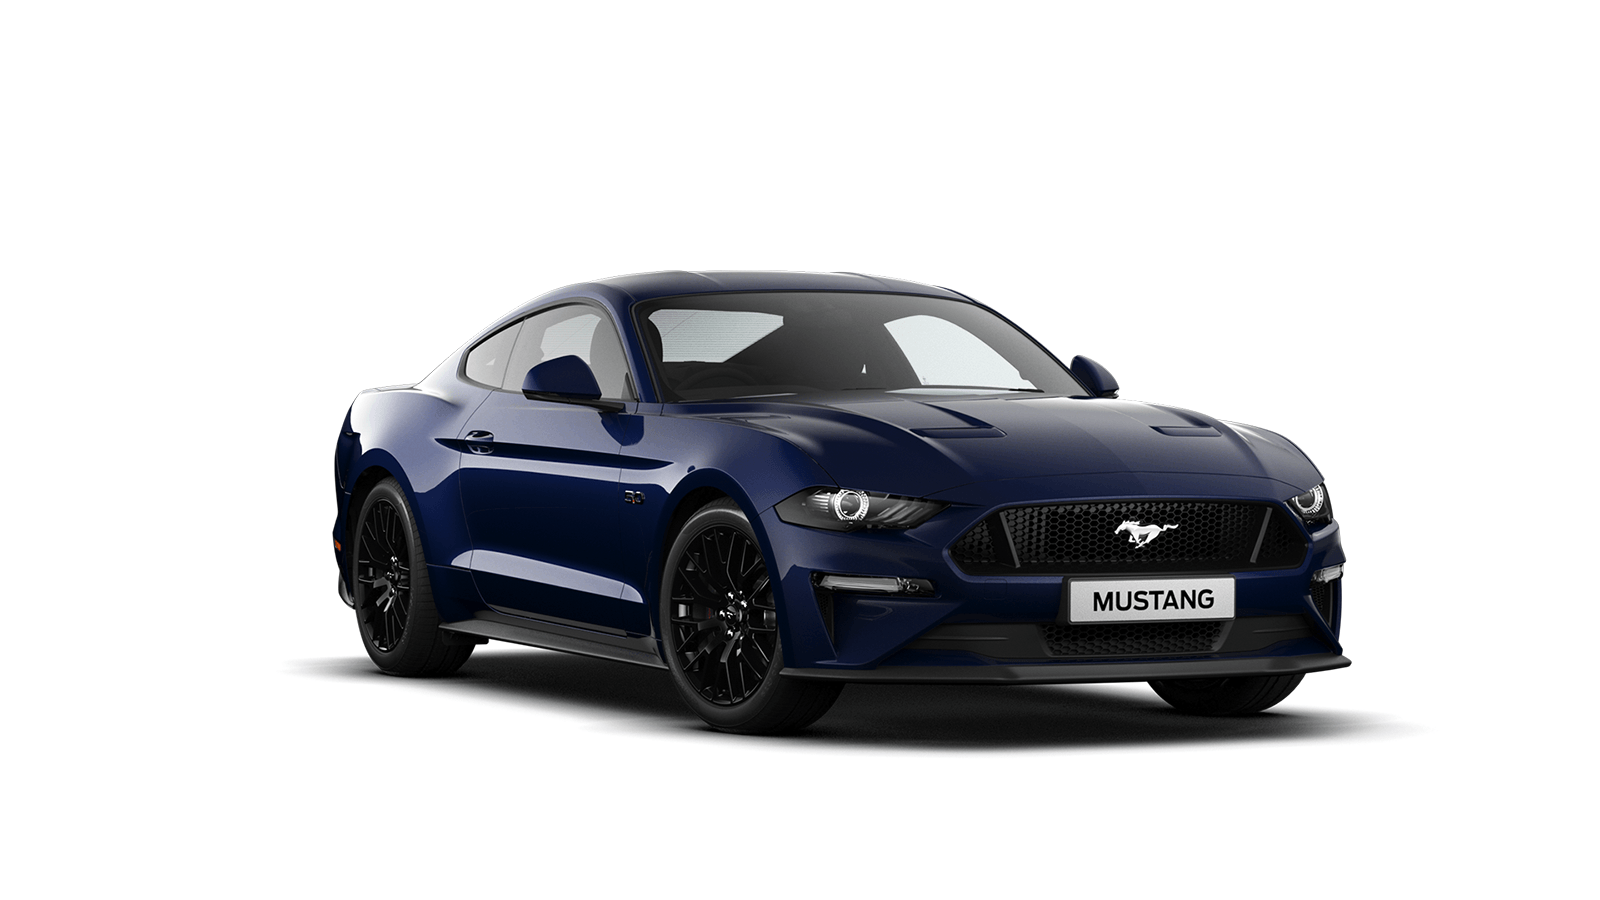 https://www.dealerinternet.co.uk/images/MUSTANG/2019/Fastback/5.0V8GT/KONA-BLUE.png